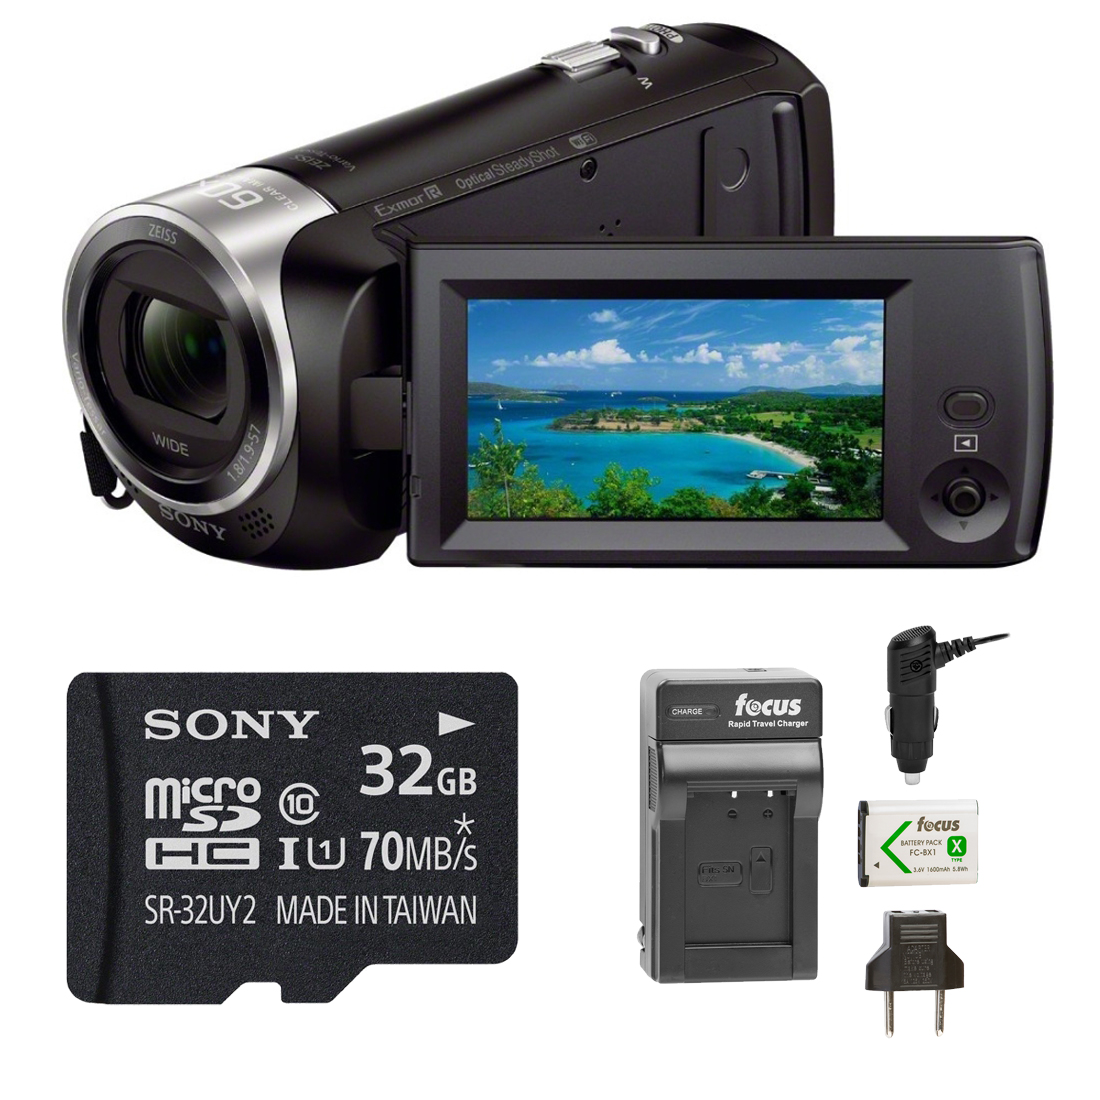 Sony HD Video Recording HDRCX440 Handycam Camcorder Bundle